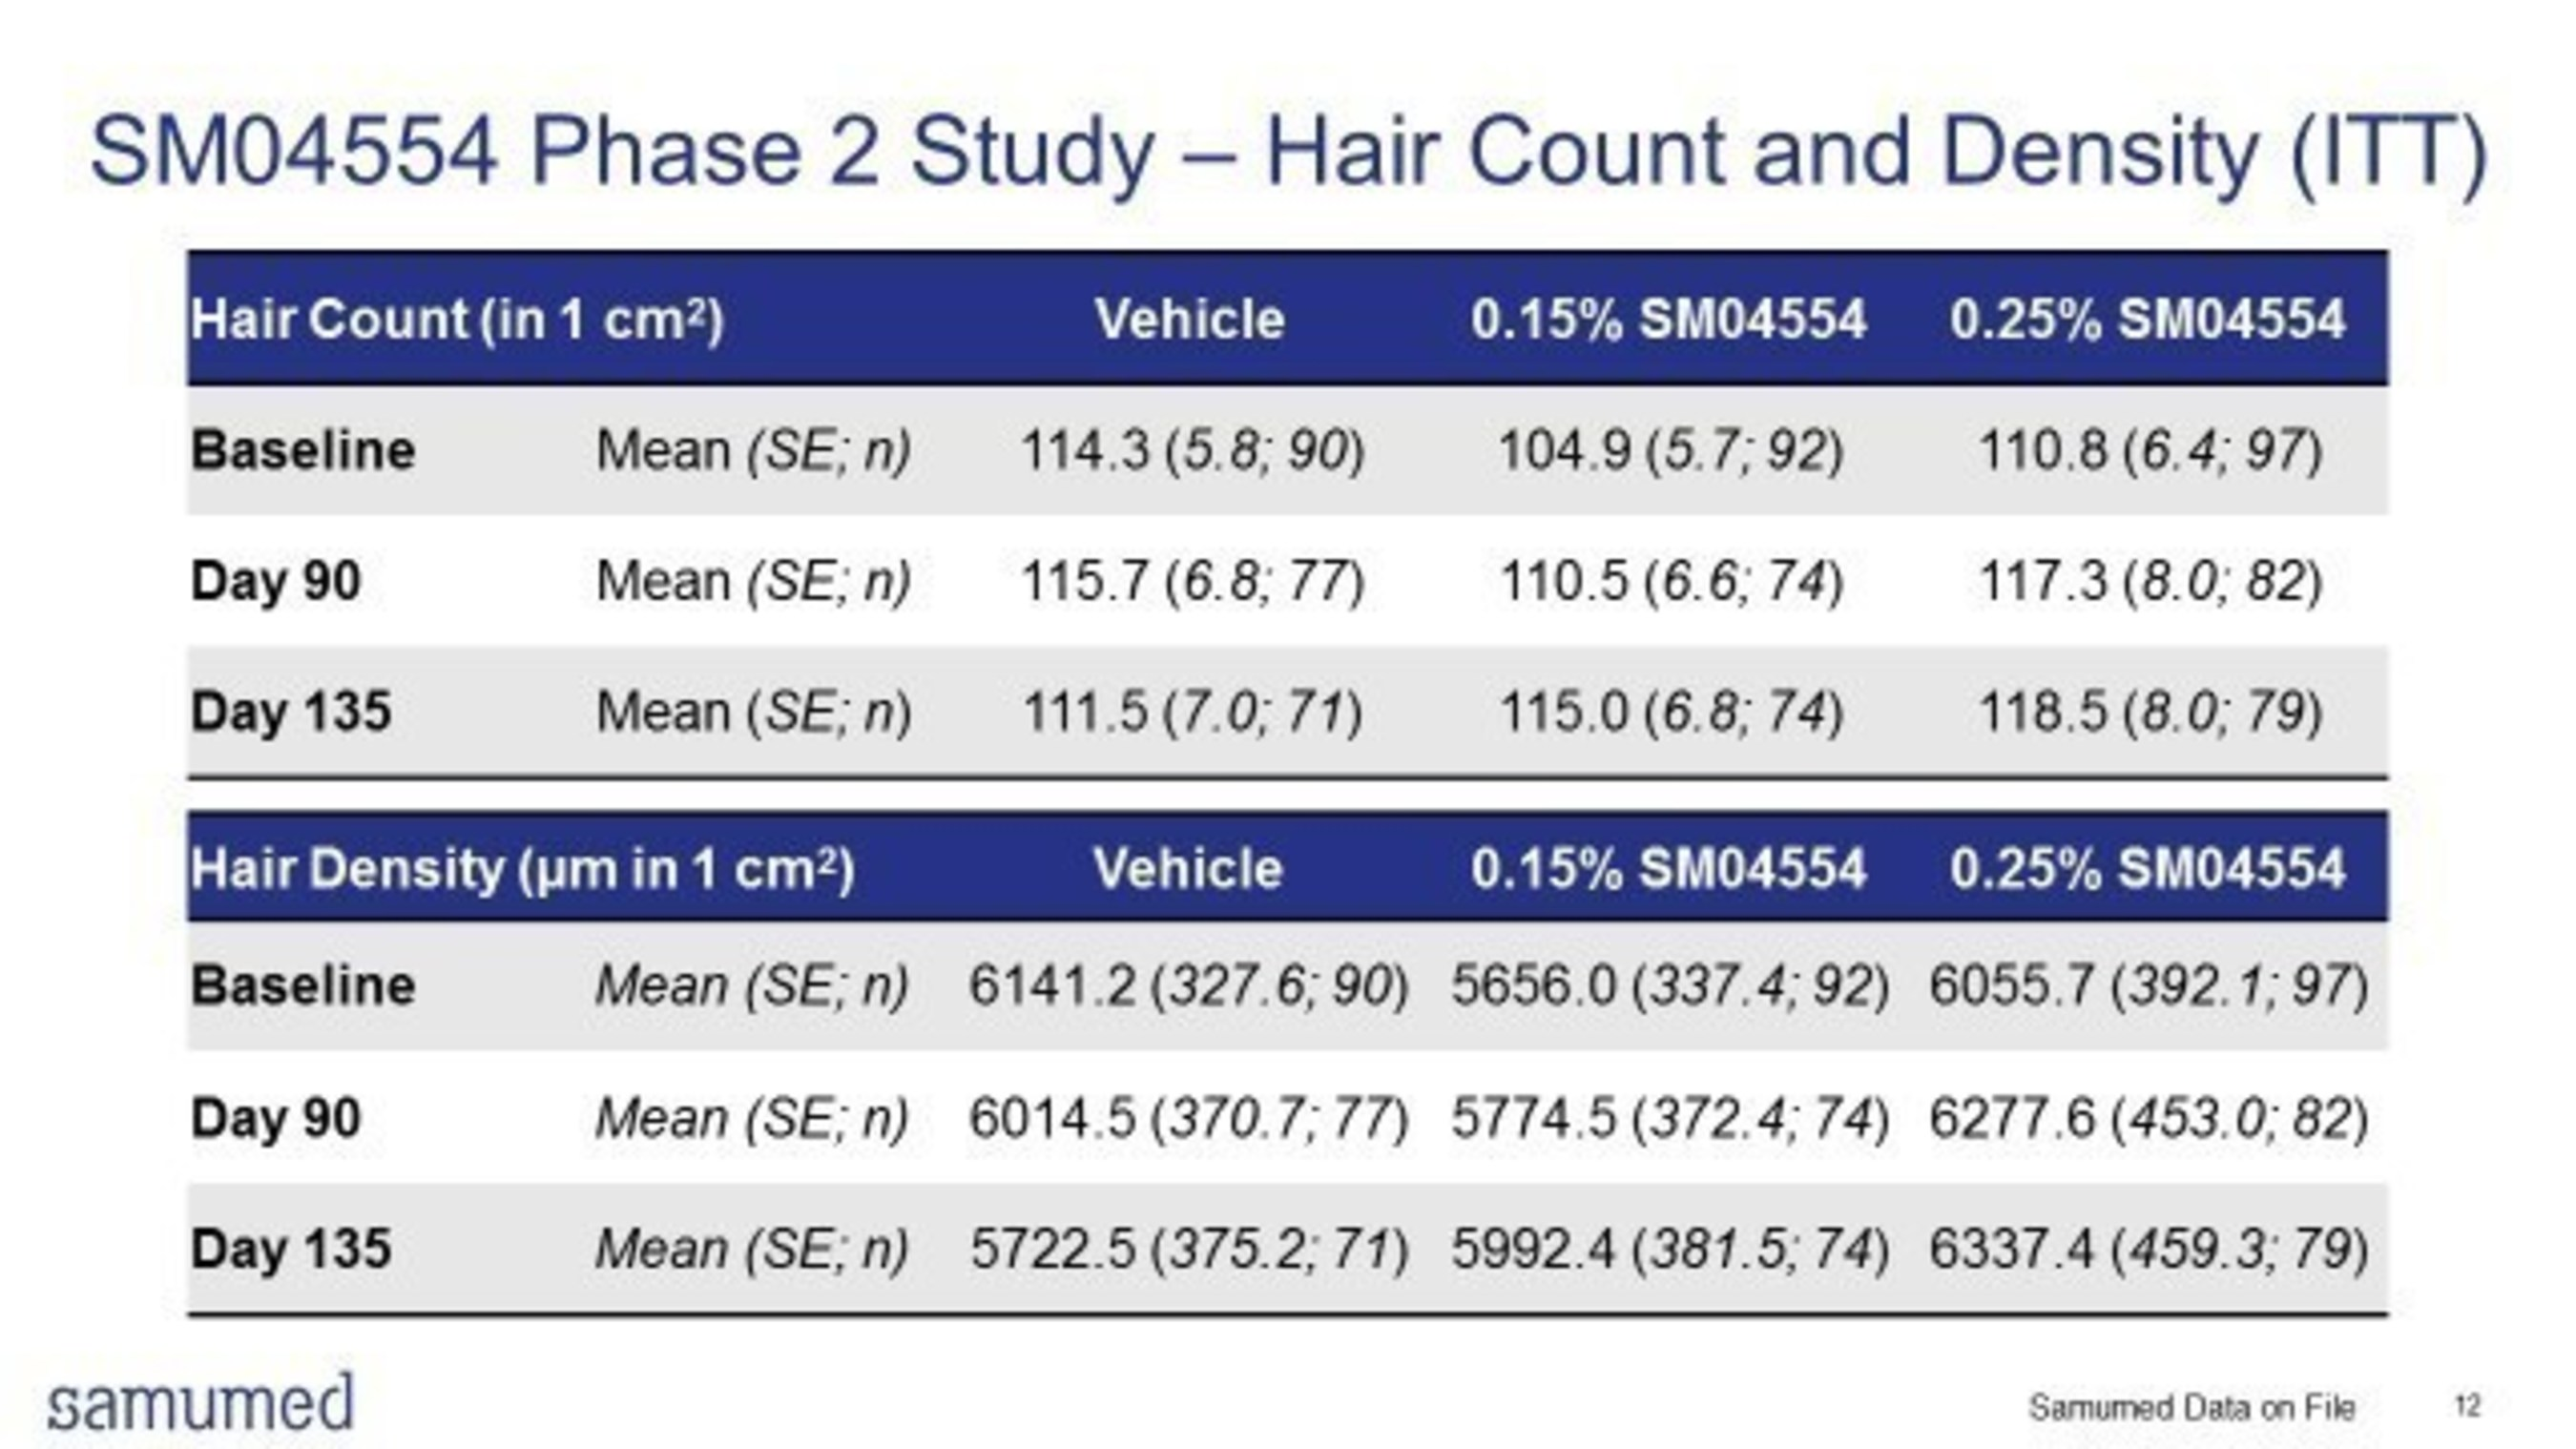 SM04554 Phase 2 Study - Hair Count and Density (ITT)